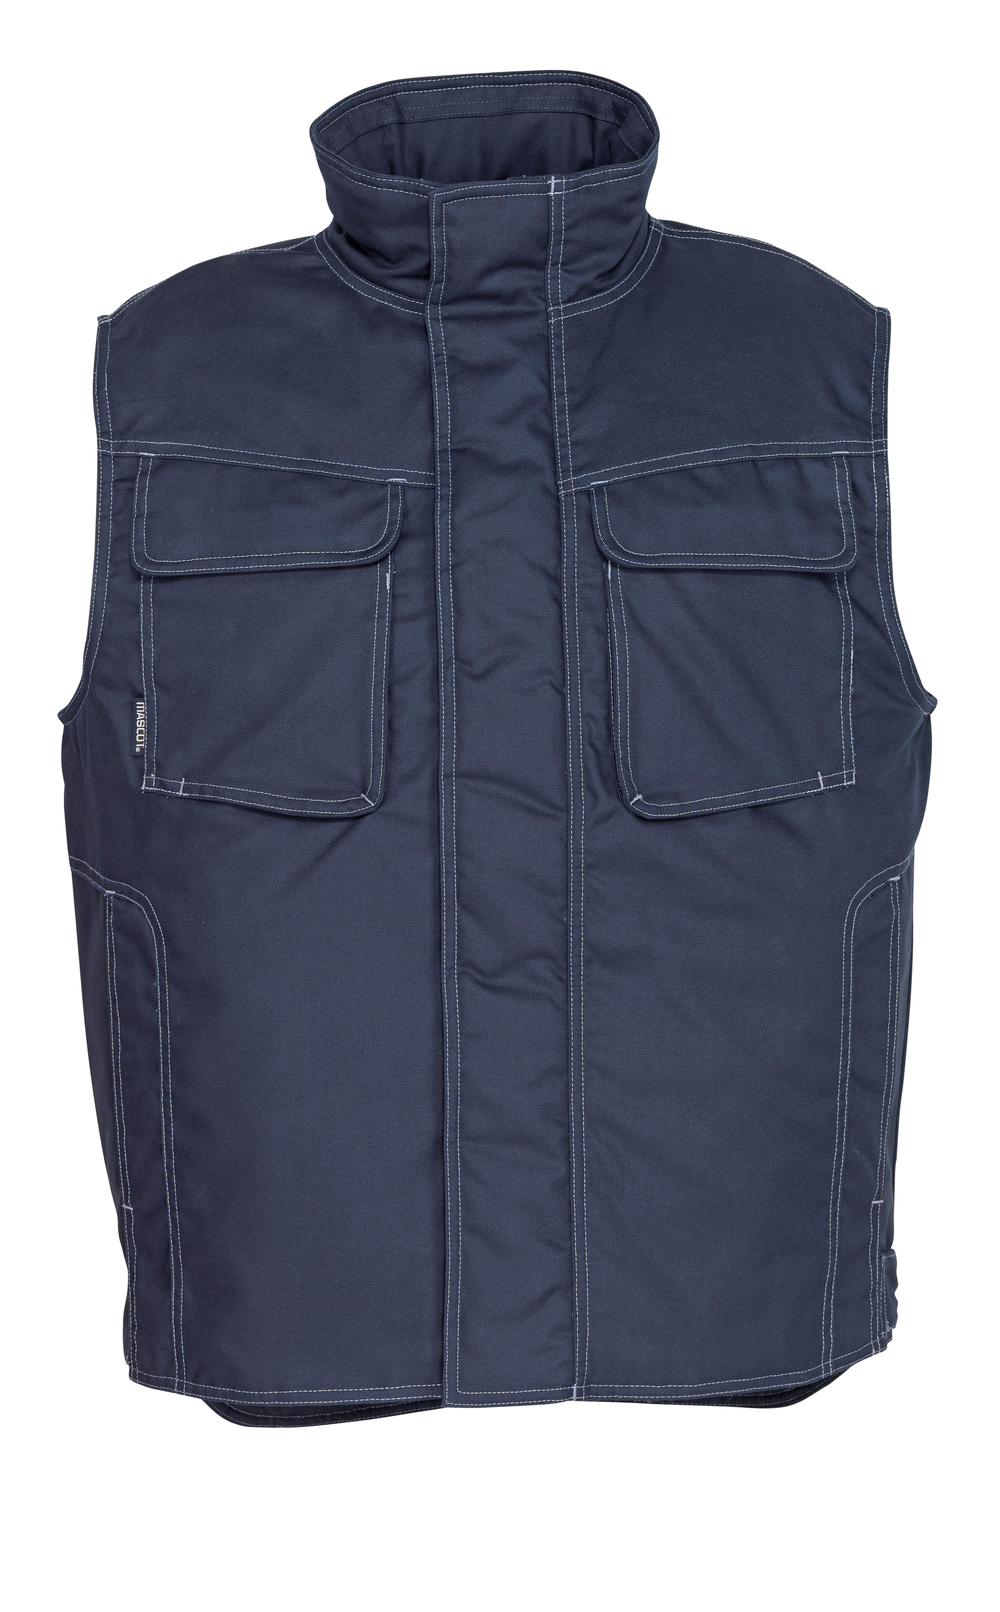 MASCOT KNOXVILLE GILET